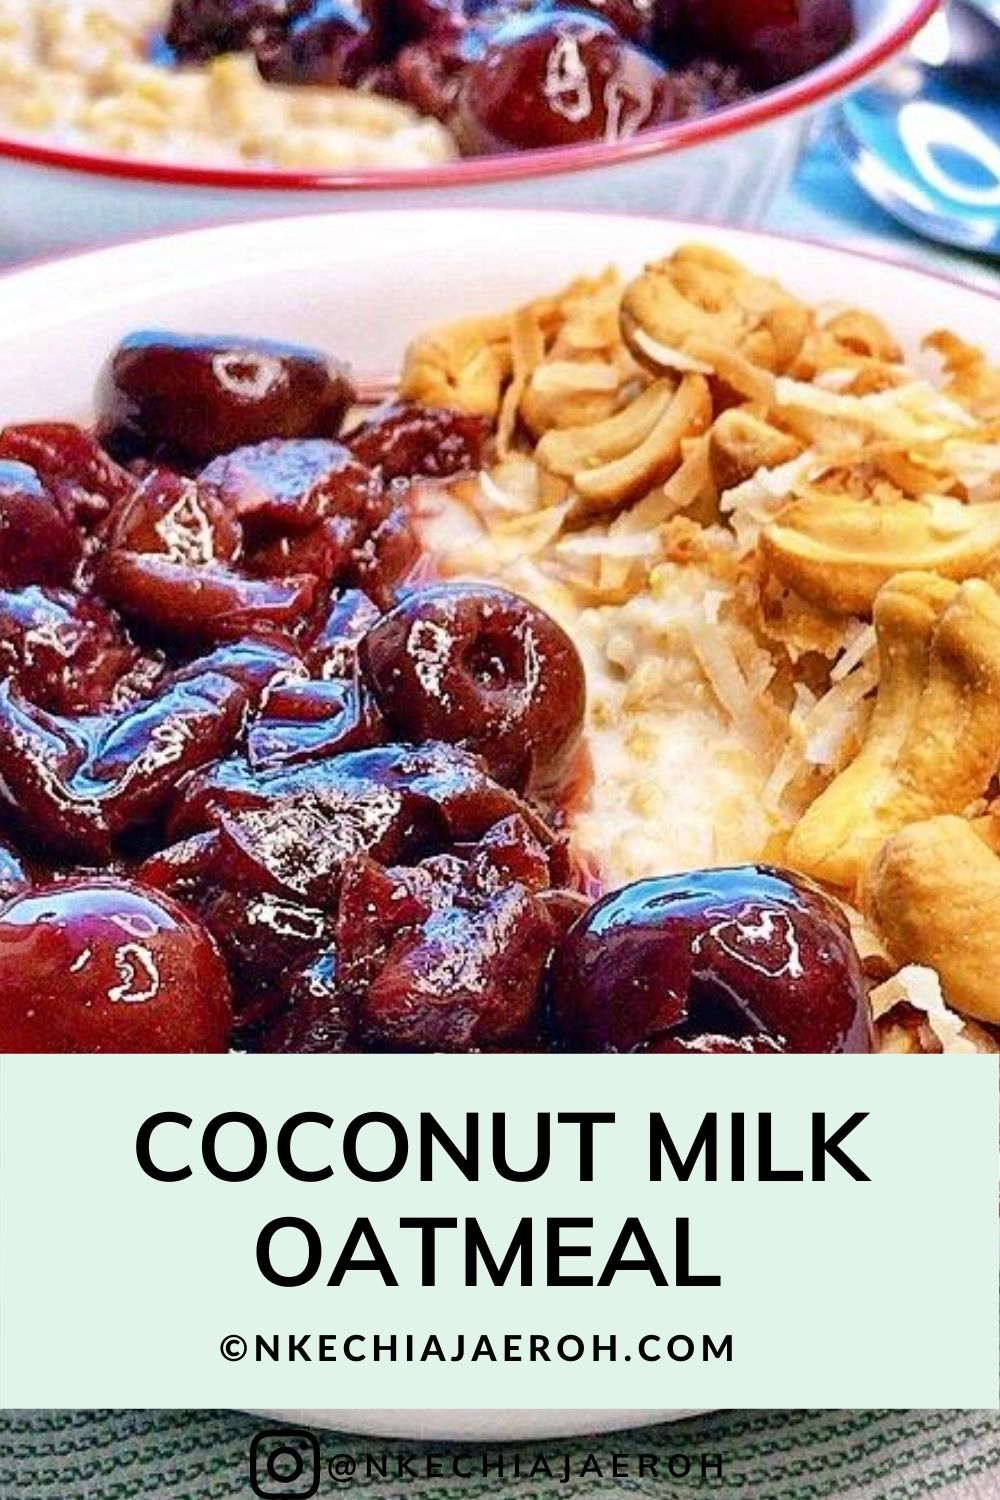 Healthy Coconut Milk Oatmeal with Stewed cherry. This warm, comforting, and satisfying bowl of oats and fresh coconut goodness has been a total hit in my household in this cold winter. And who says you can't enjoy them in the summer months. The kids love it, the husband and I adore it!